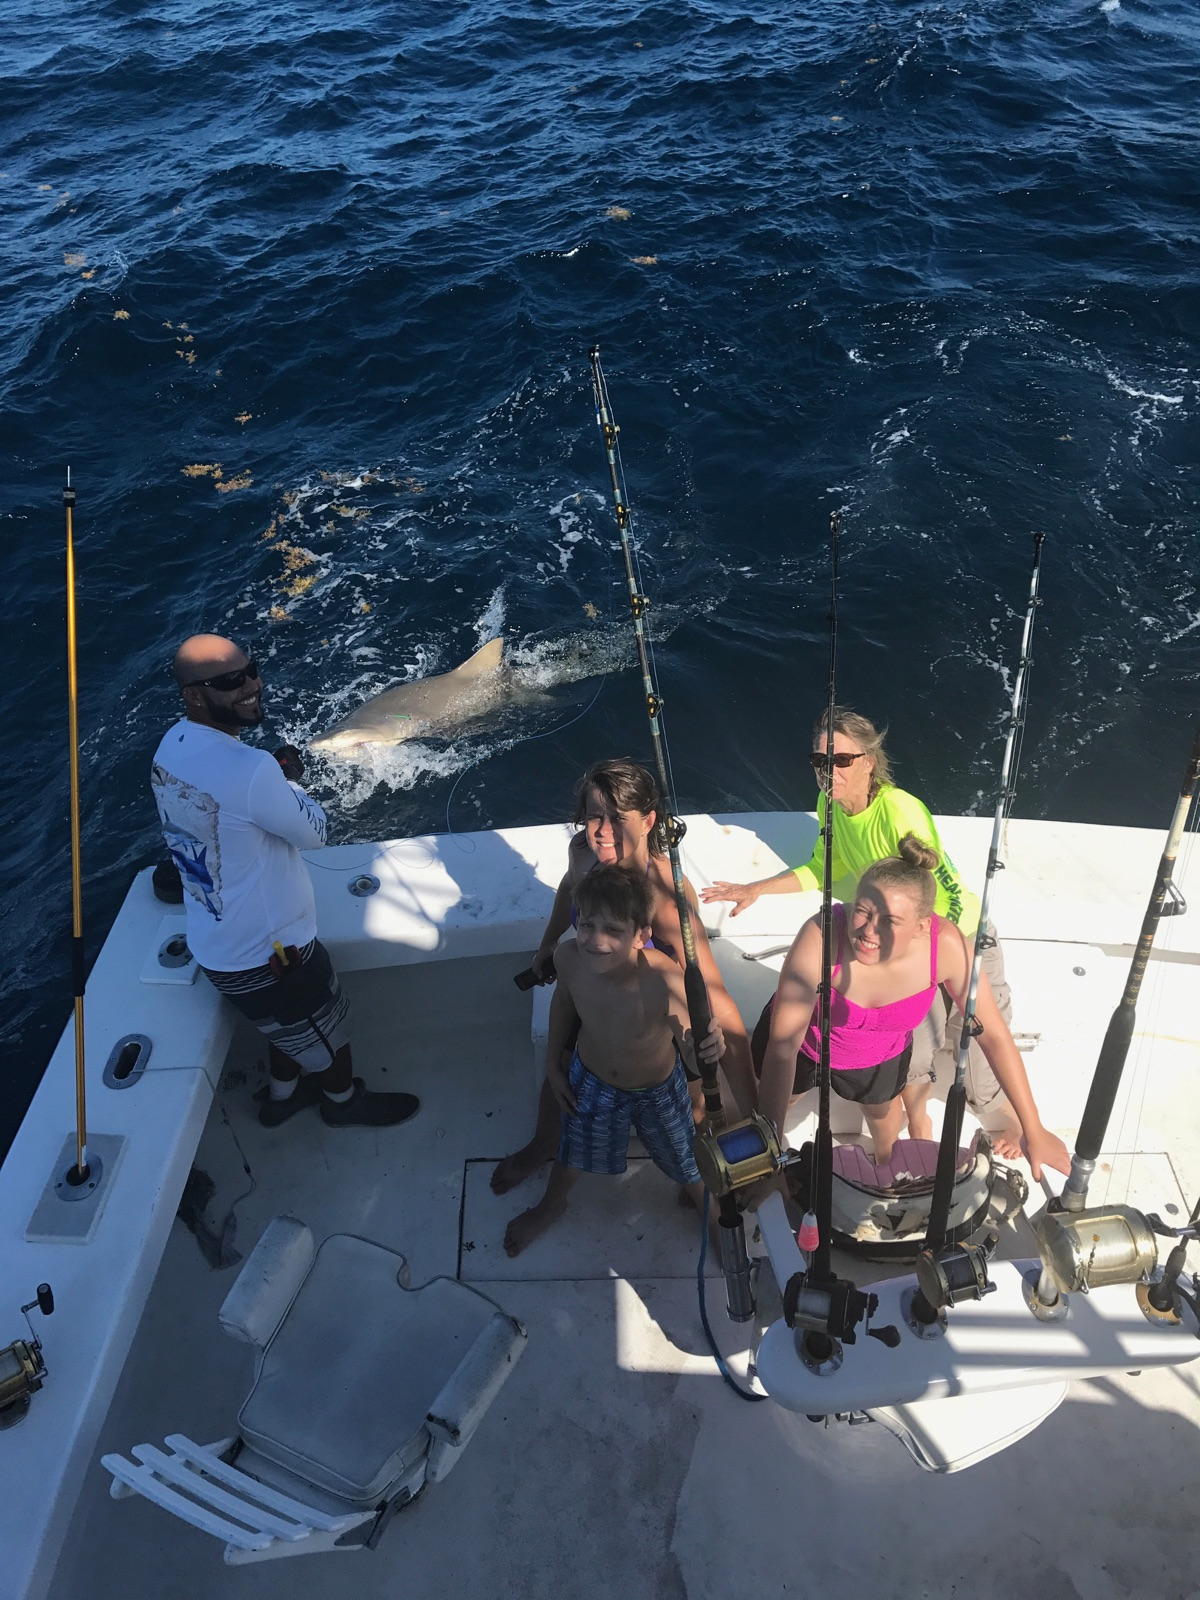 Great summertime action on our ft lauderdale fishing charters for Shark fishing charters